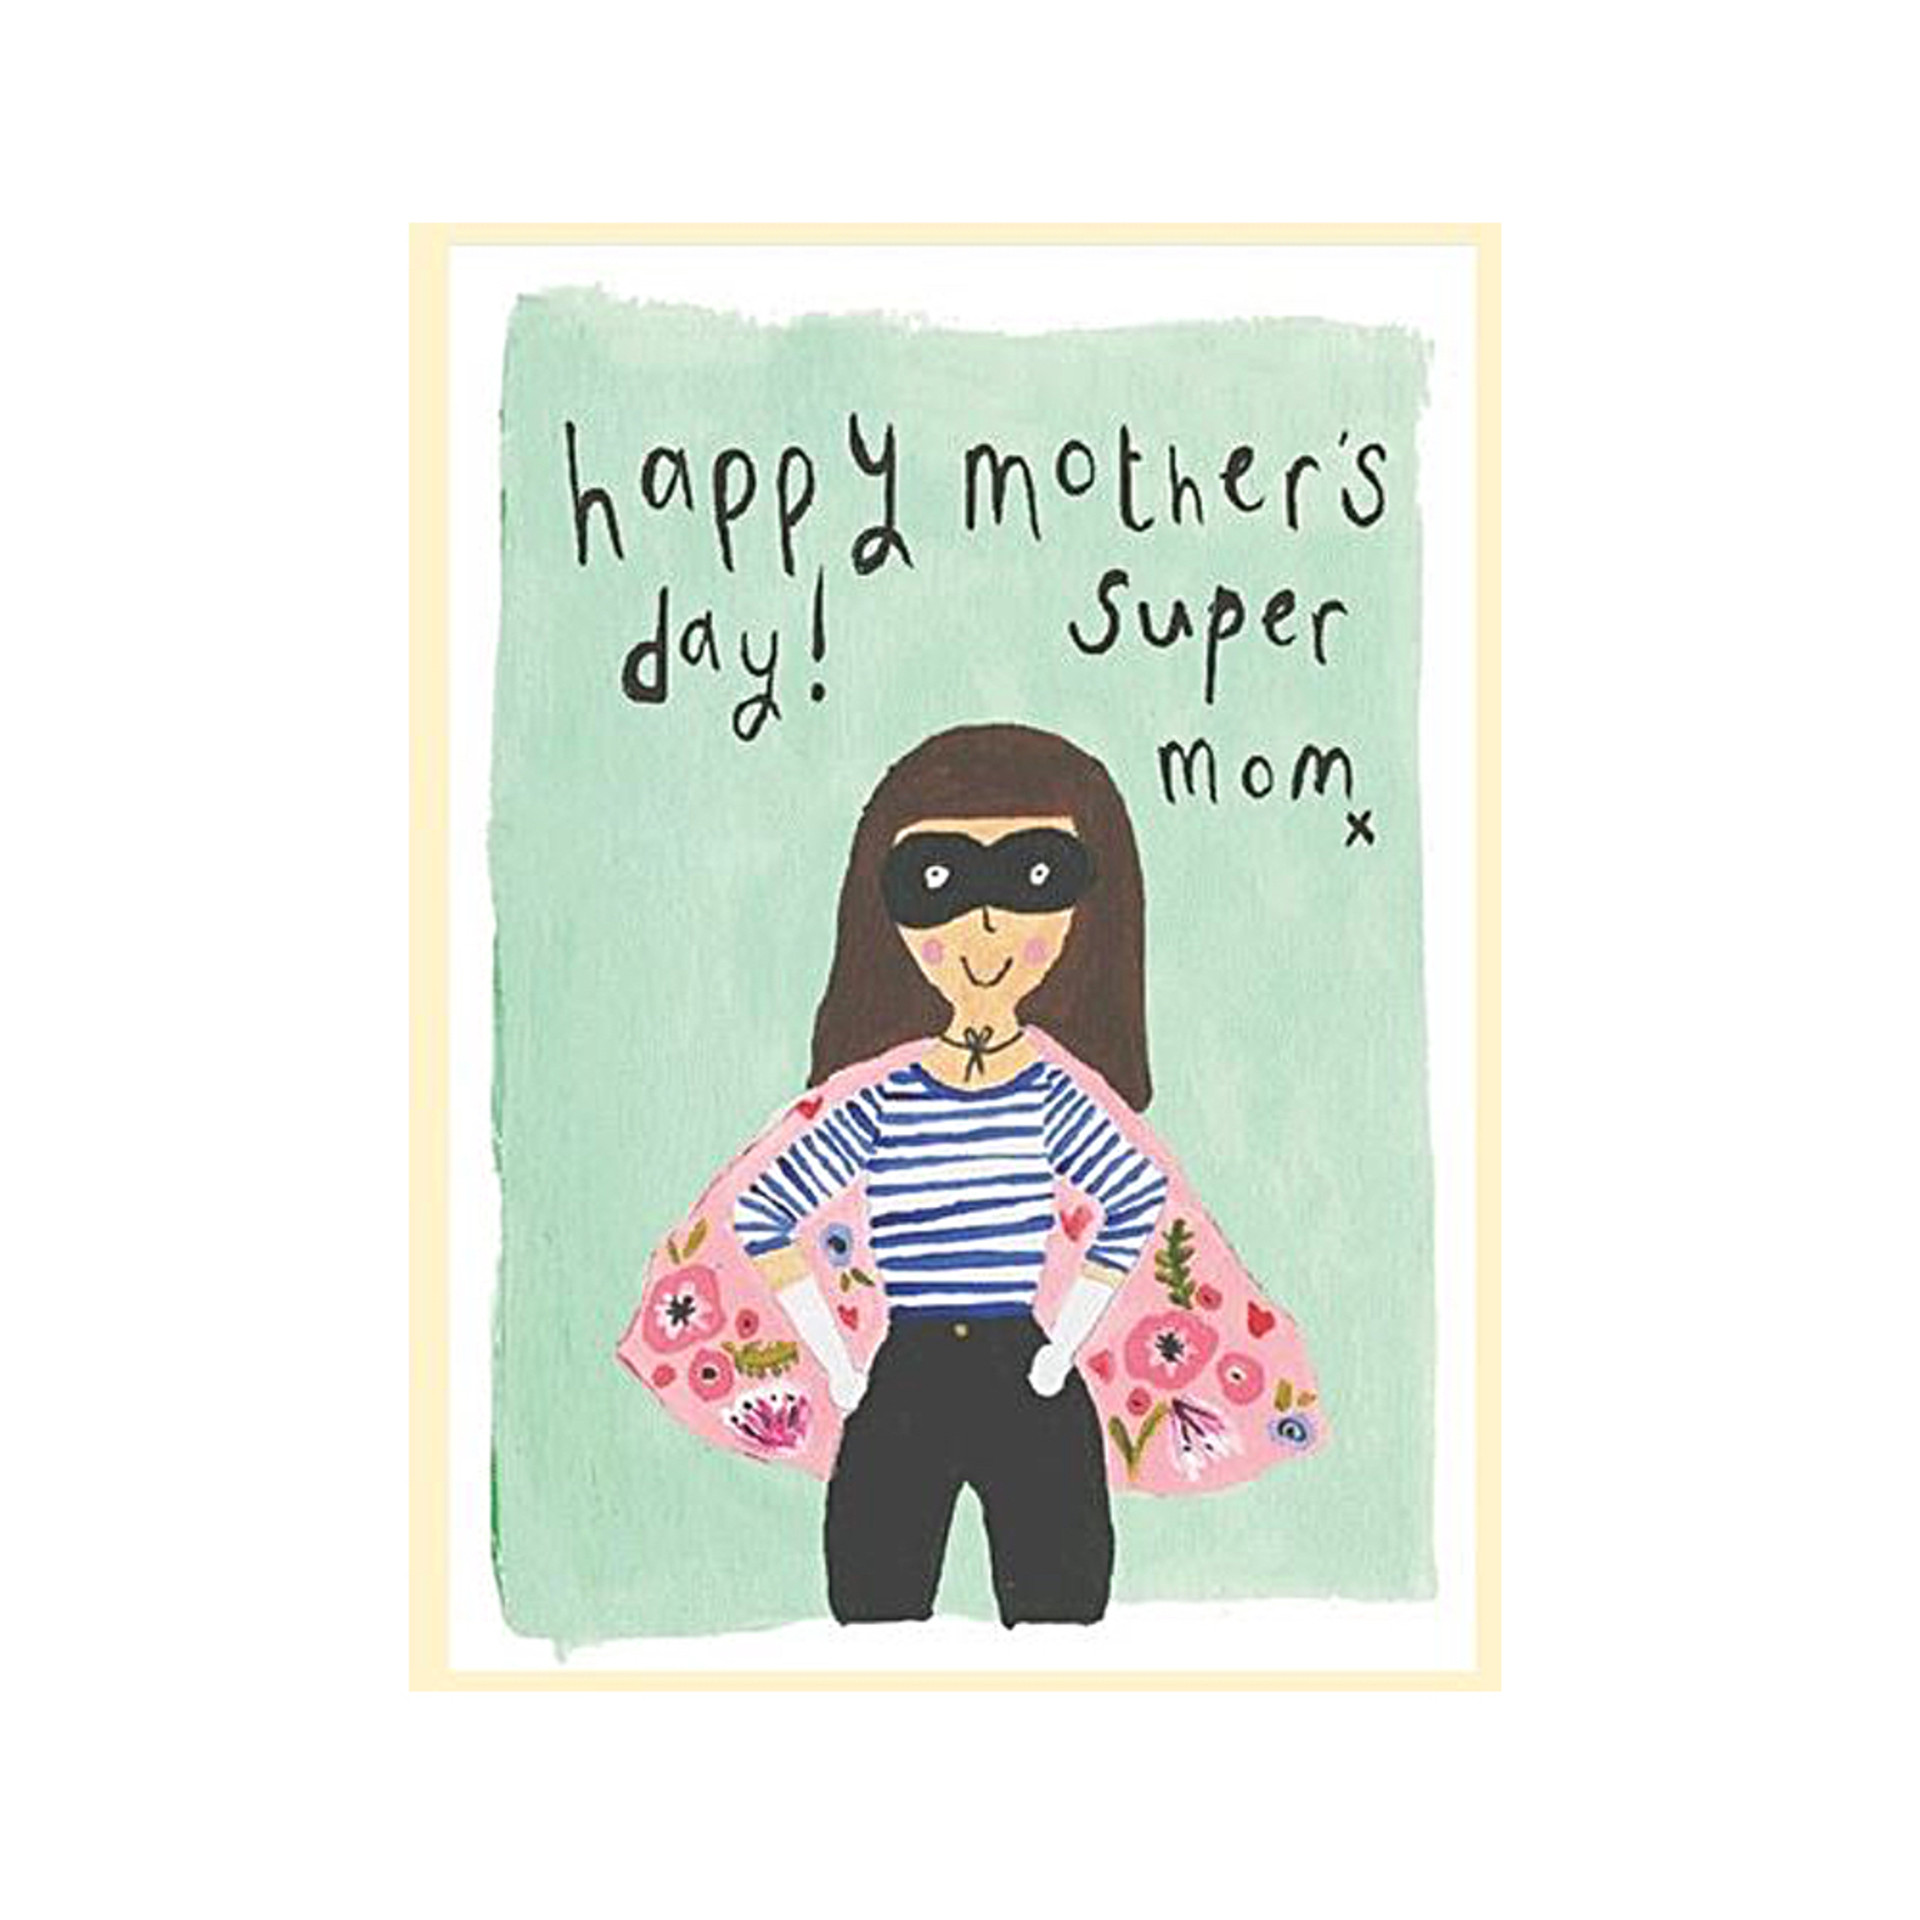 Happy Mother's Day! Super Mom Greeting Card